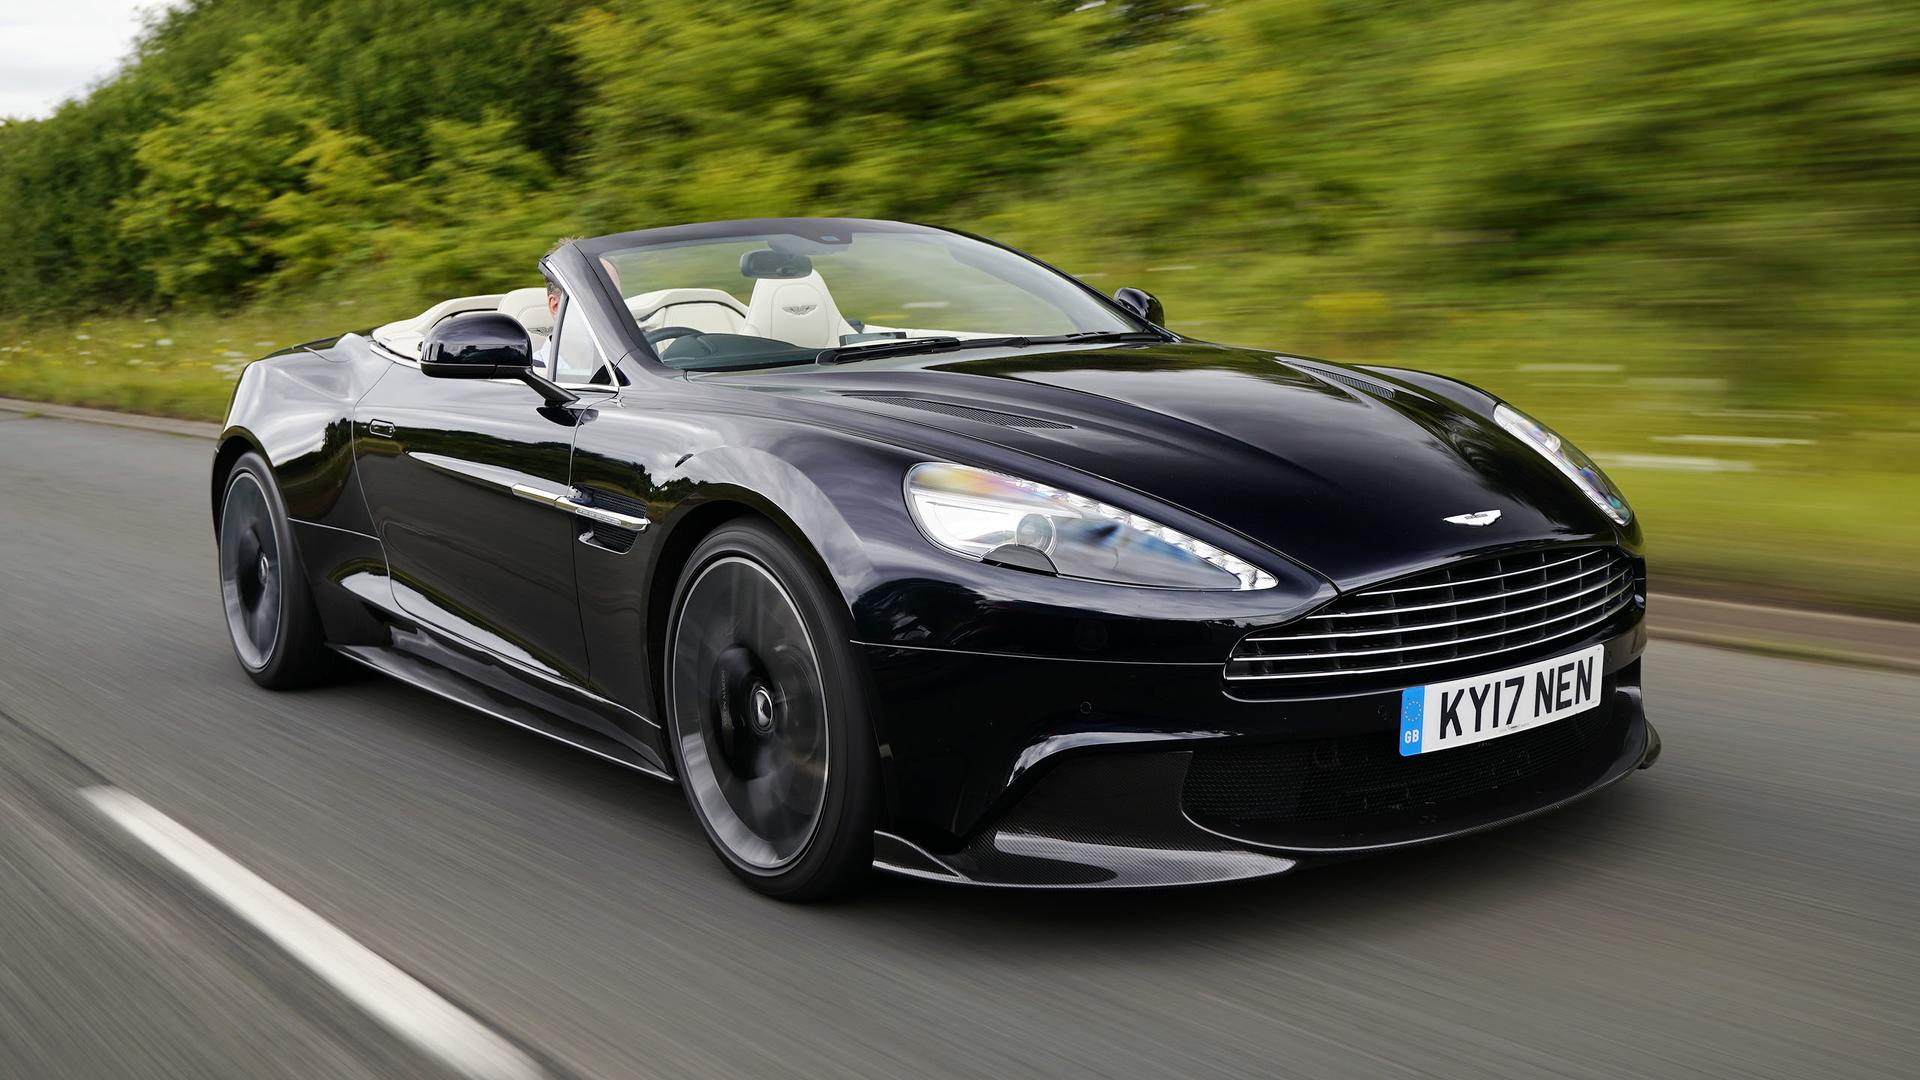 2018 aston martin vanquish s volante first drive the final encore. Black Bedroom Furniture Sets. Home Design Ideas